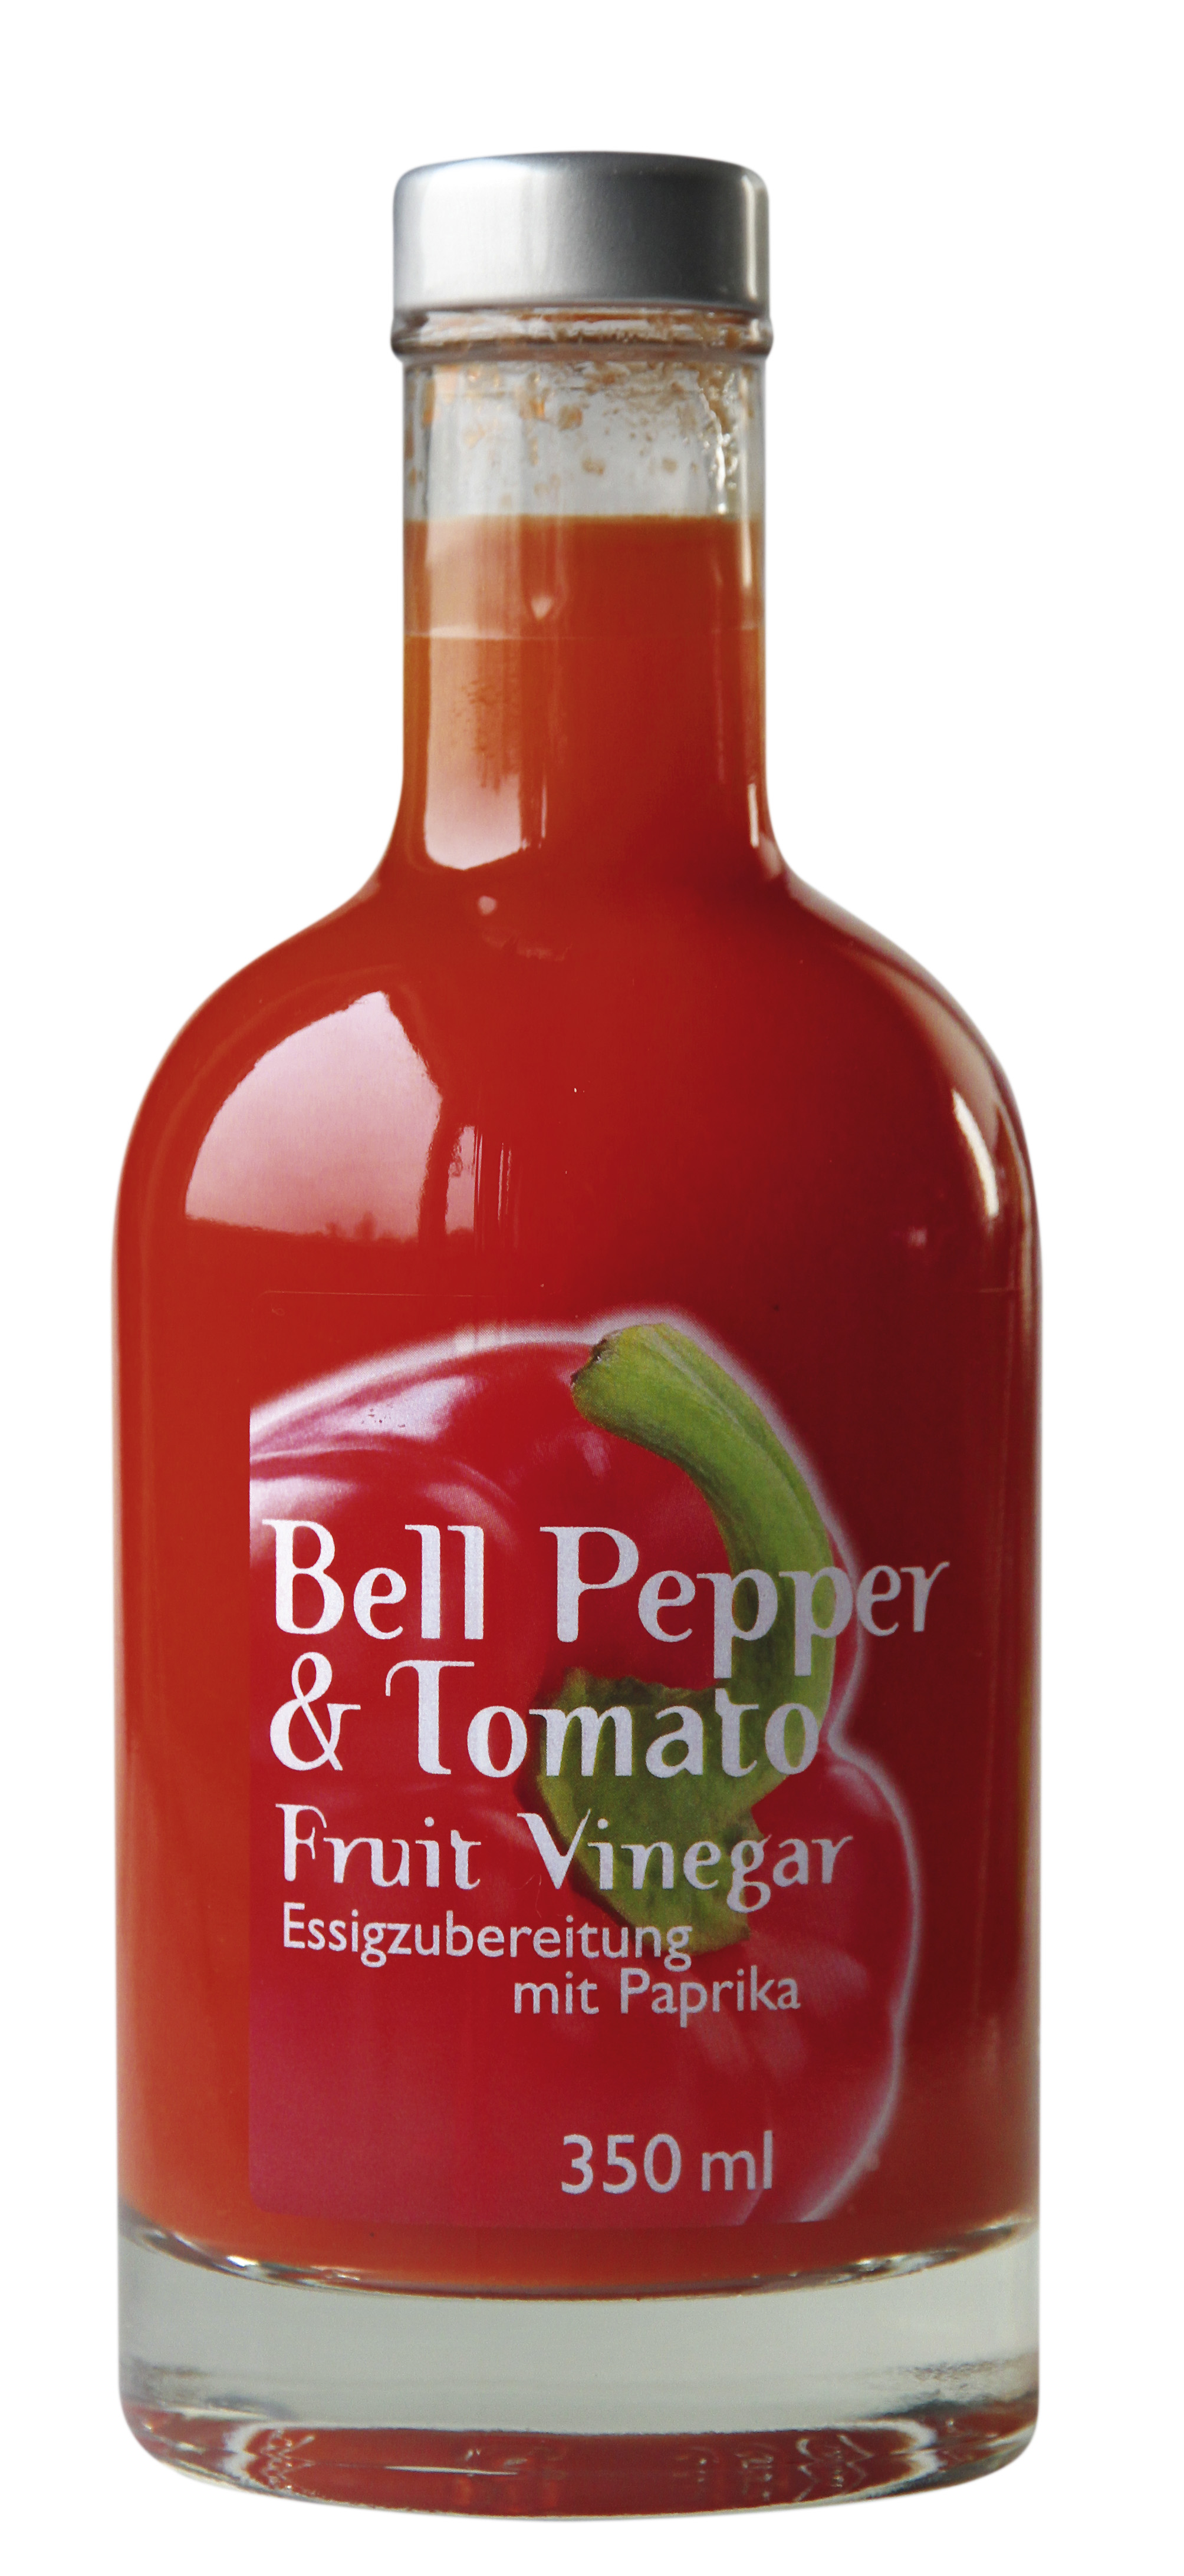 Bell Pepper & Tomato Fruit Vinegar